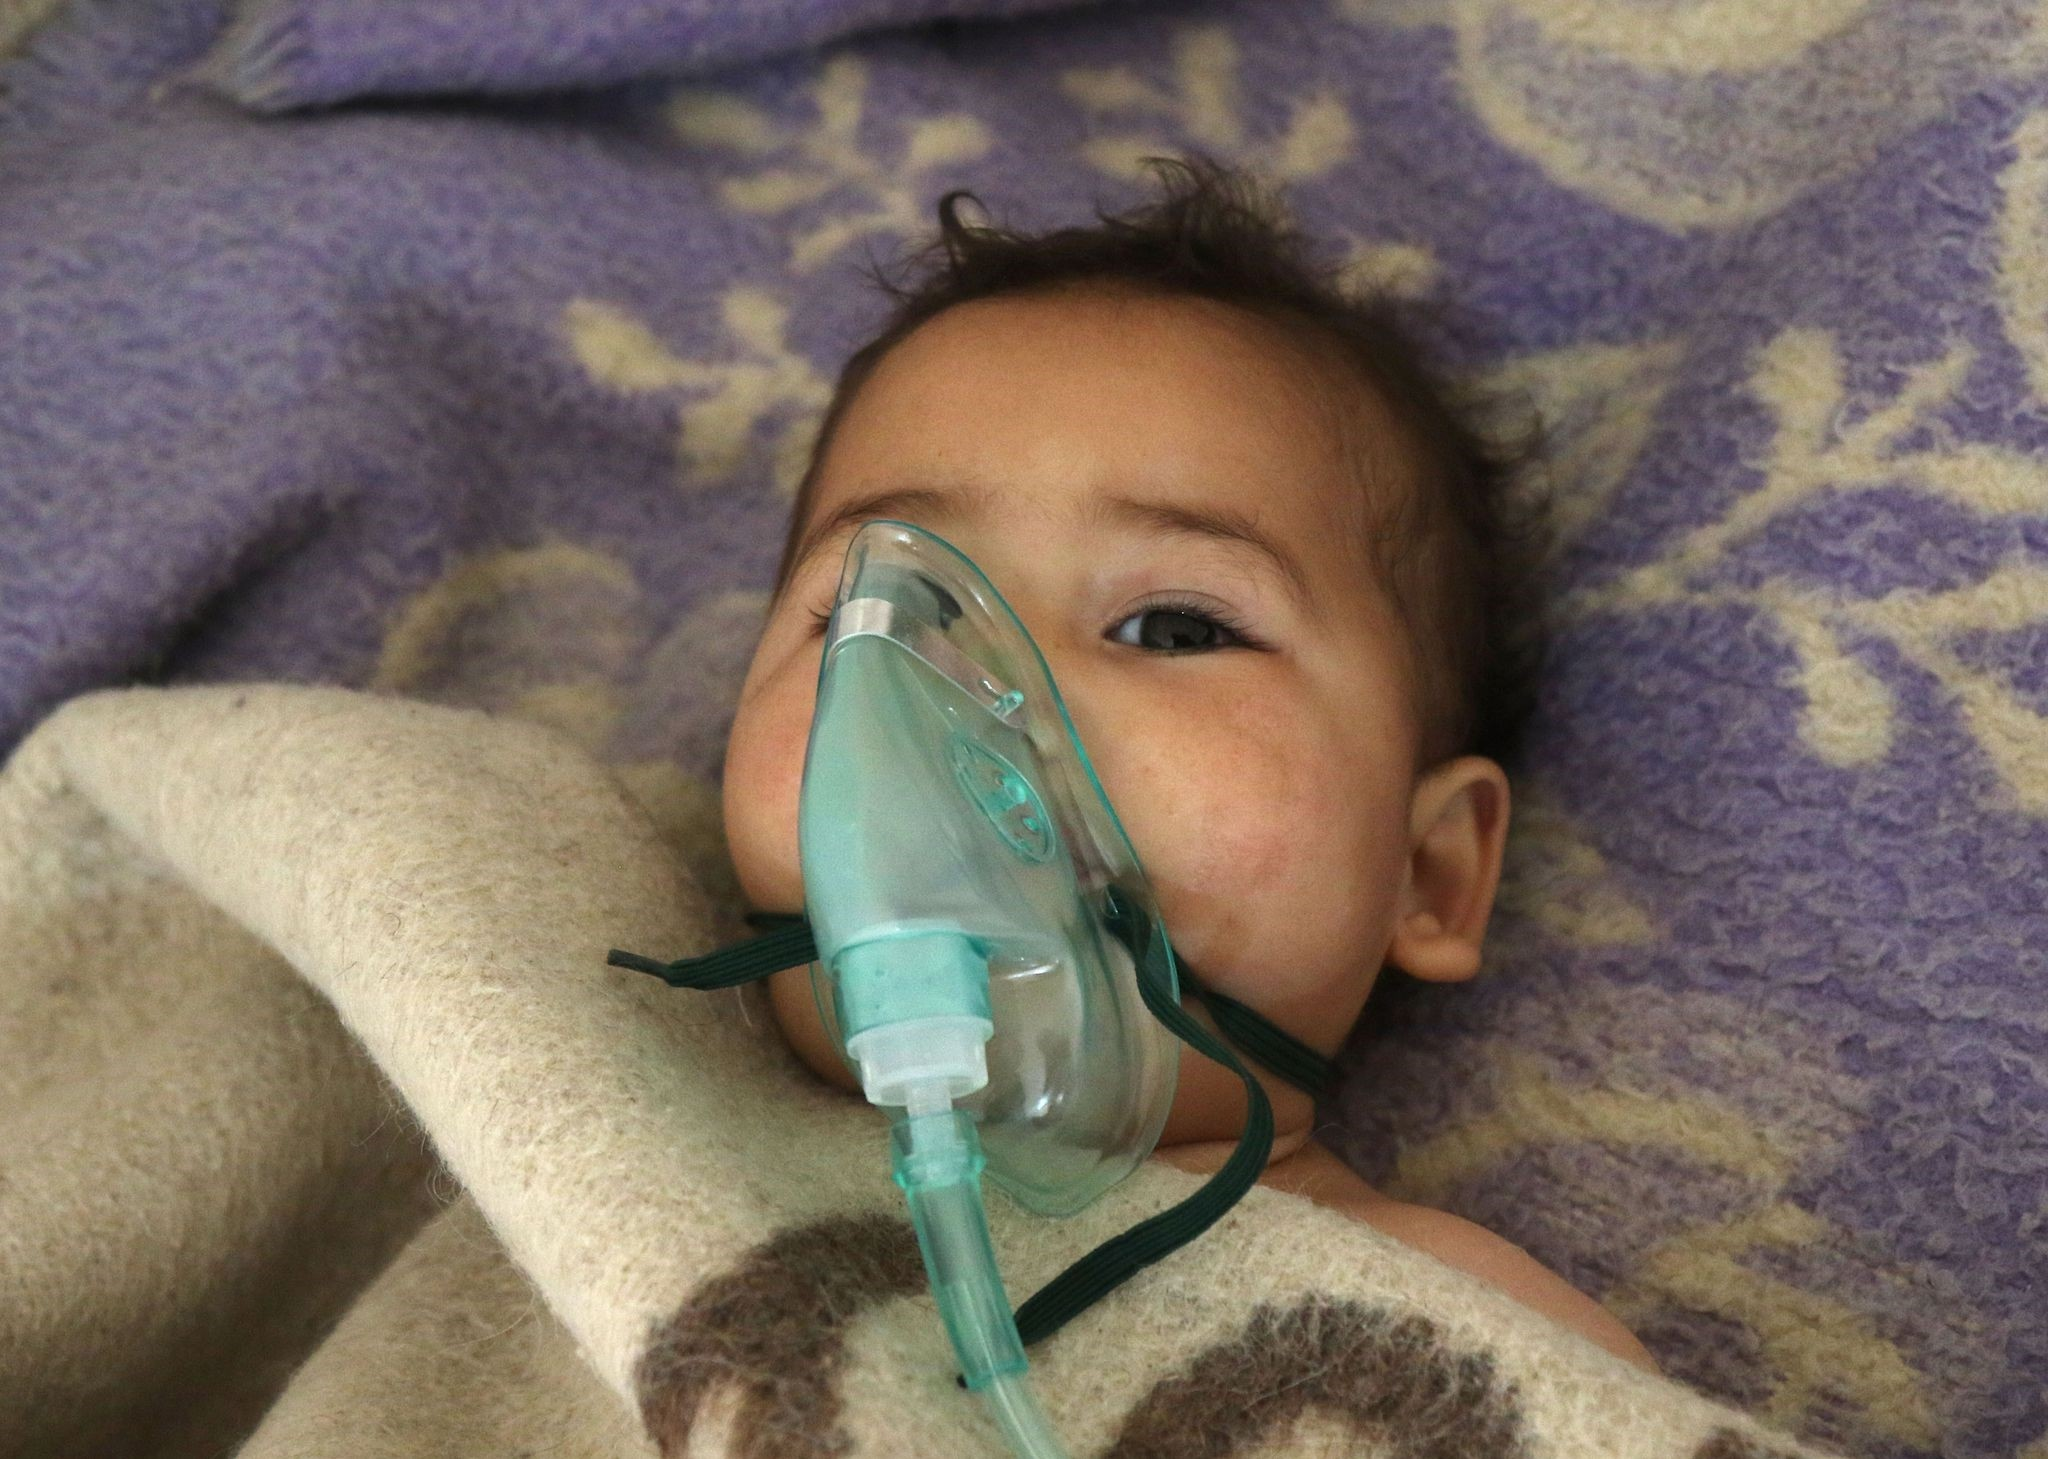 A Syrian child receives treatment at a small hospital in the town of Maaret al-Noman following a toxic gas attack in Syriau2019s northwestern Idlib province on April 4.